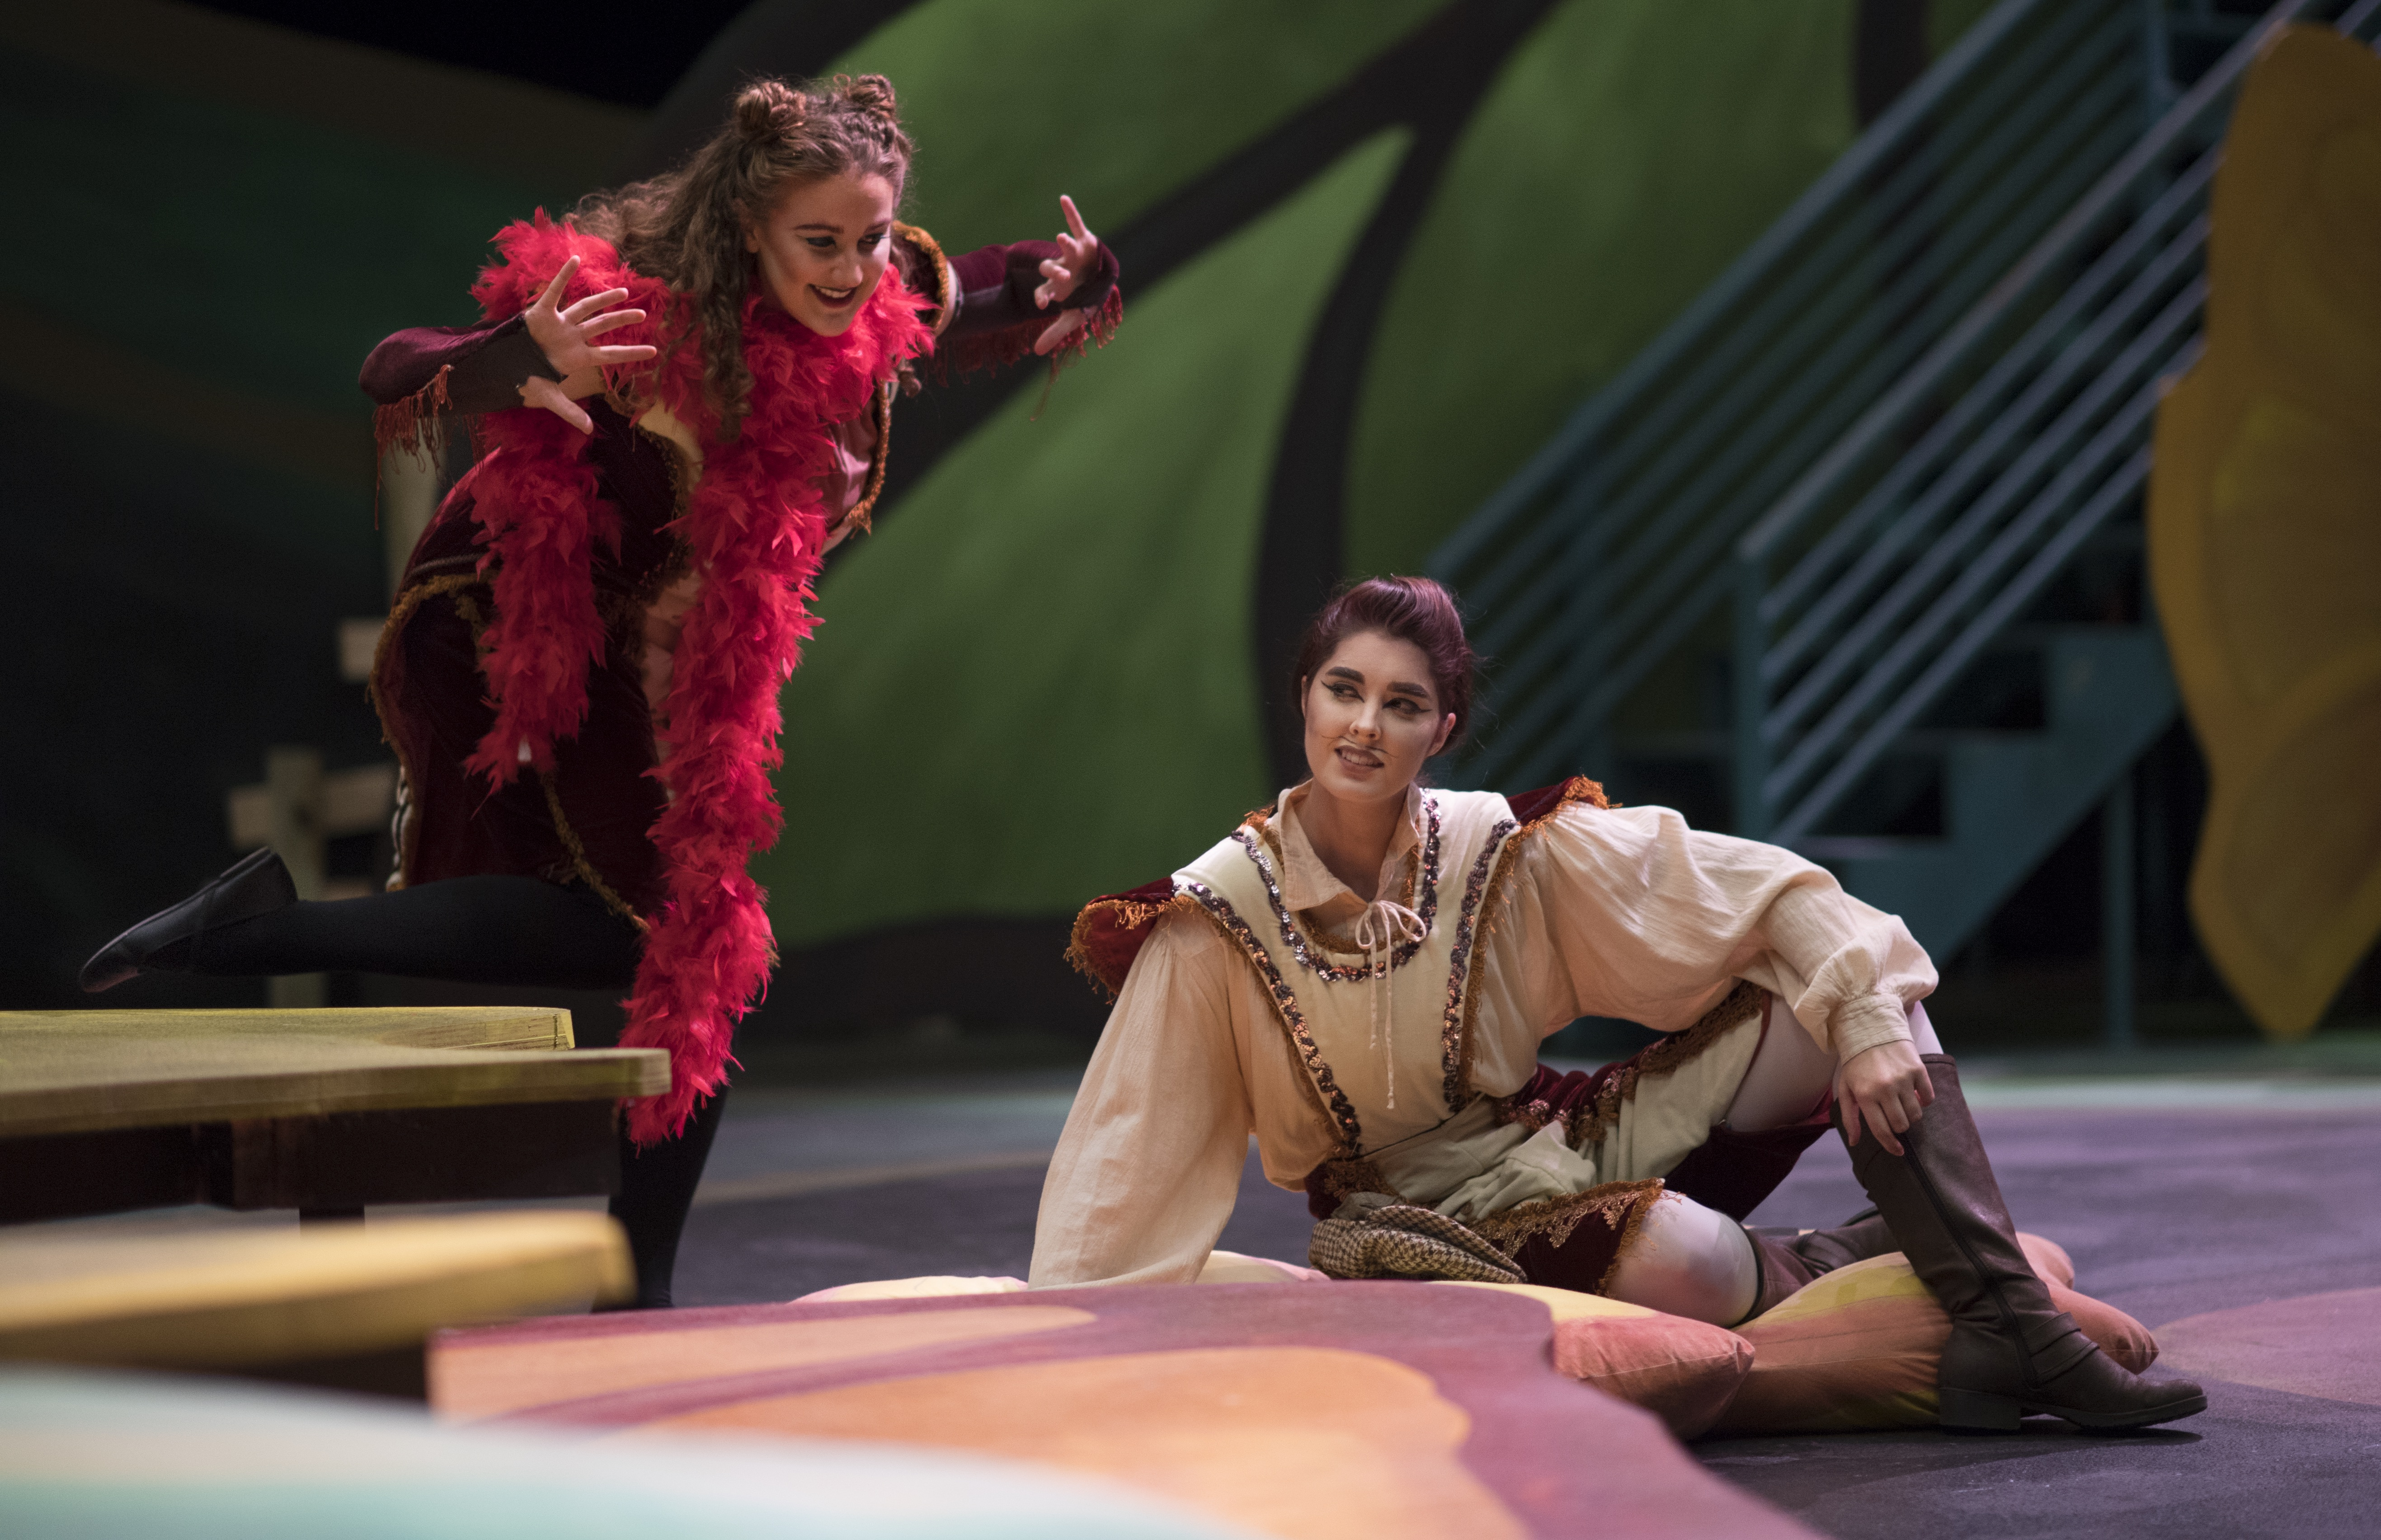 """UNT College of Music's """"The Cunning Little Vixen"""" shares tale of discovery through the eyes of woodland creatures"""